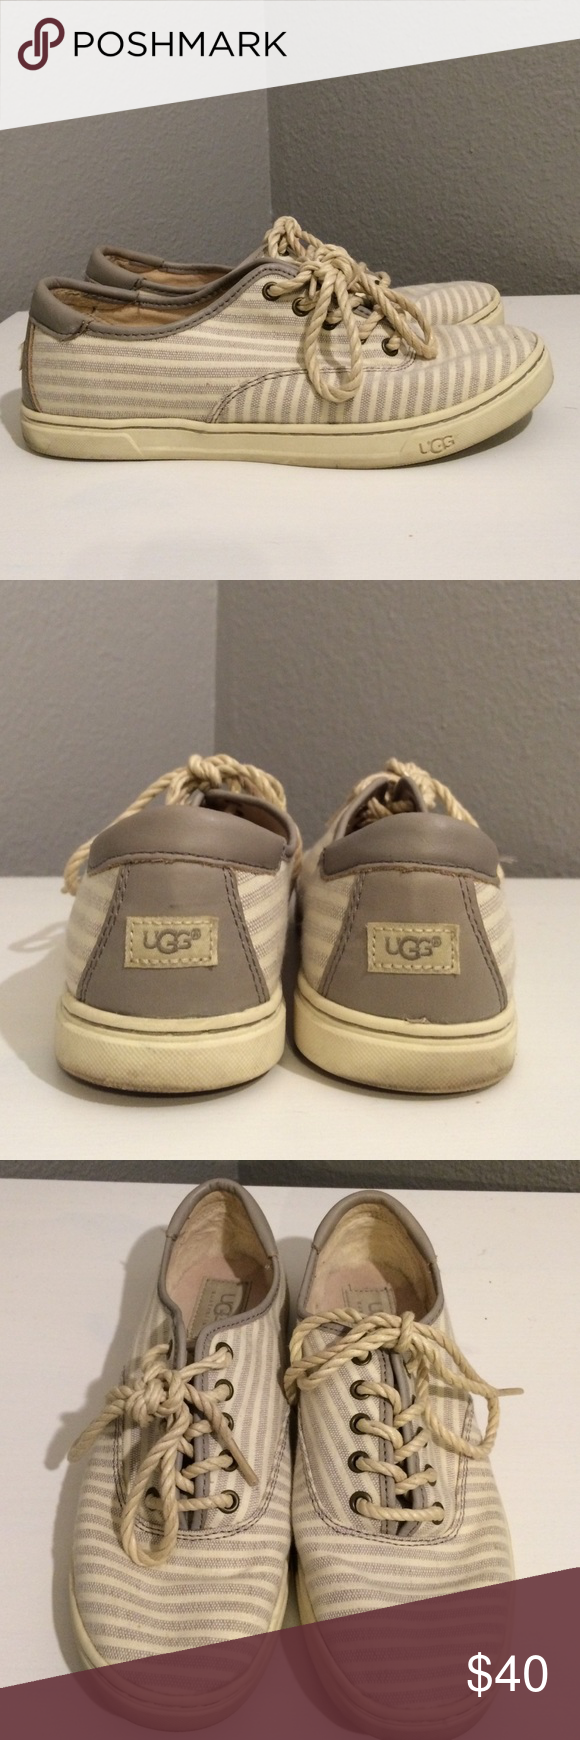 UGG sneakers UGG cream and gray sneakers with rope-style laces. Barely worn and in good condition! UGG Shoes Sneakers